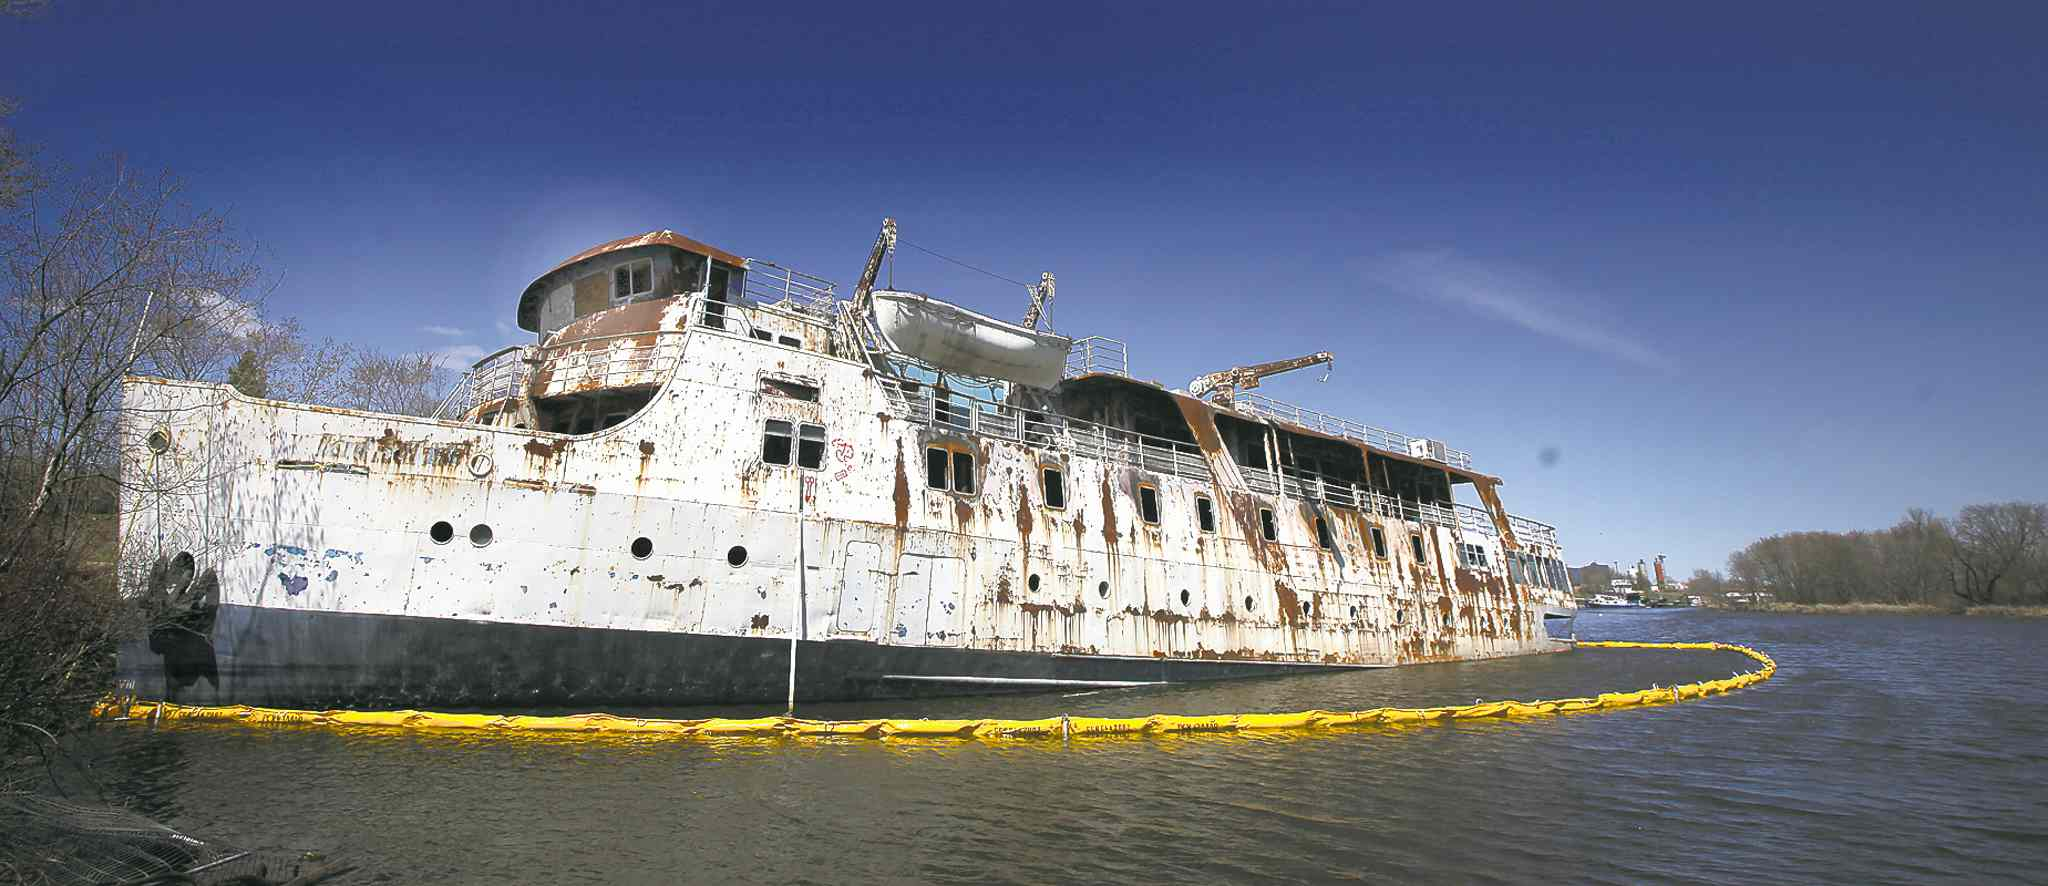 Phil Hossack / Winnipeg Free PressThe once-grand MS Lord Selkirk sits listing and leaking in a Selkirk slough. The ship contains contaminants such as lead and arsenic.